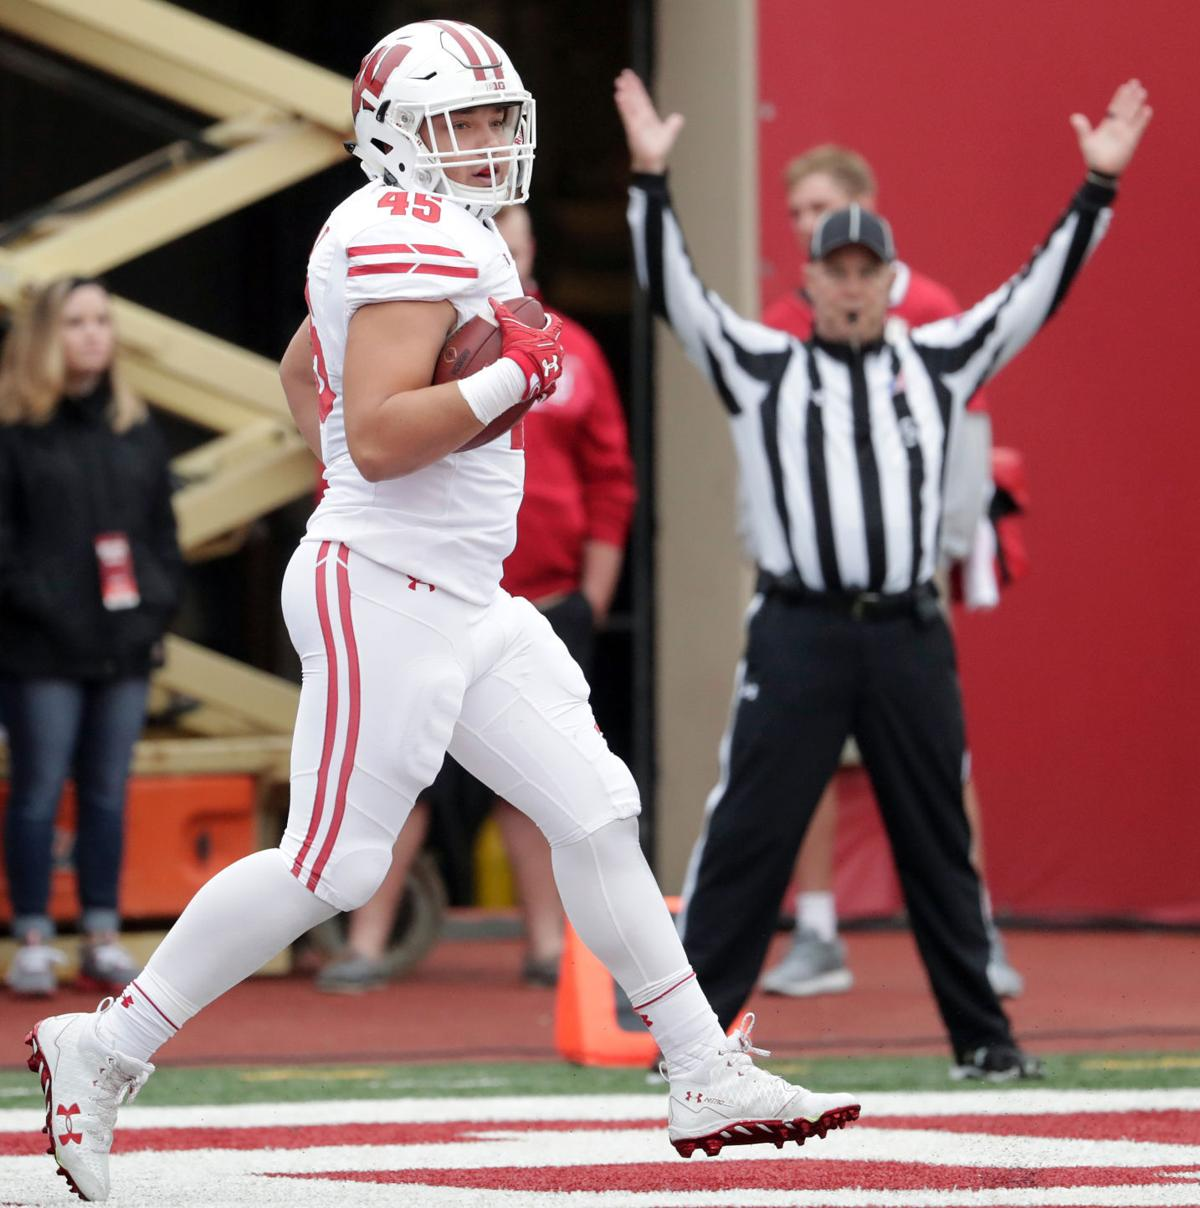 Alec Ingold TD against Indiana, State Journal photo